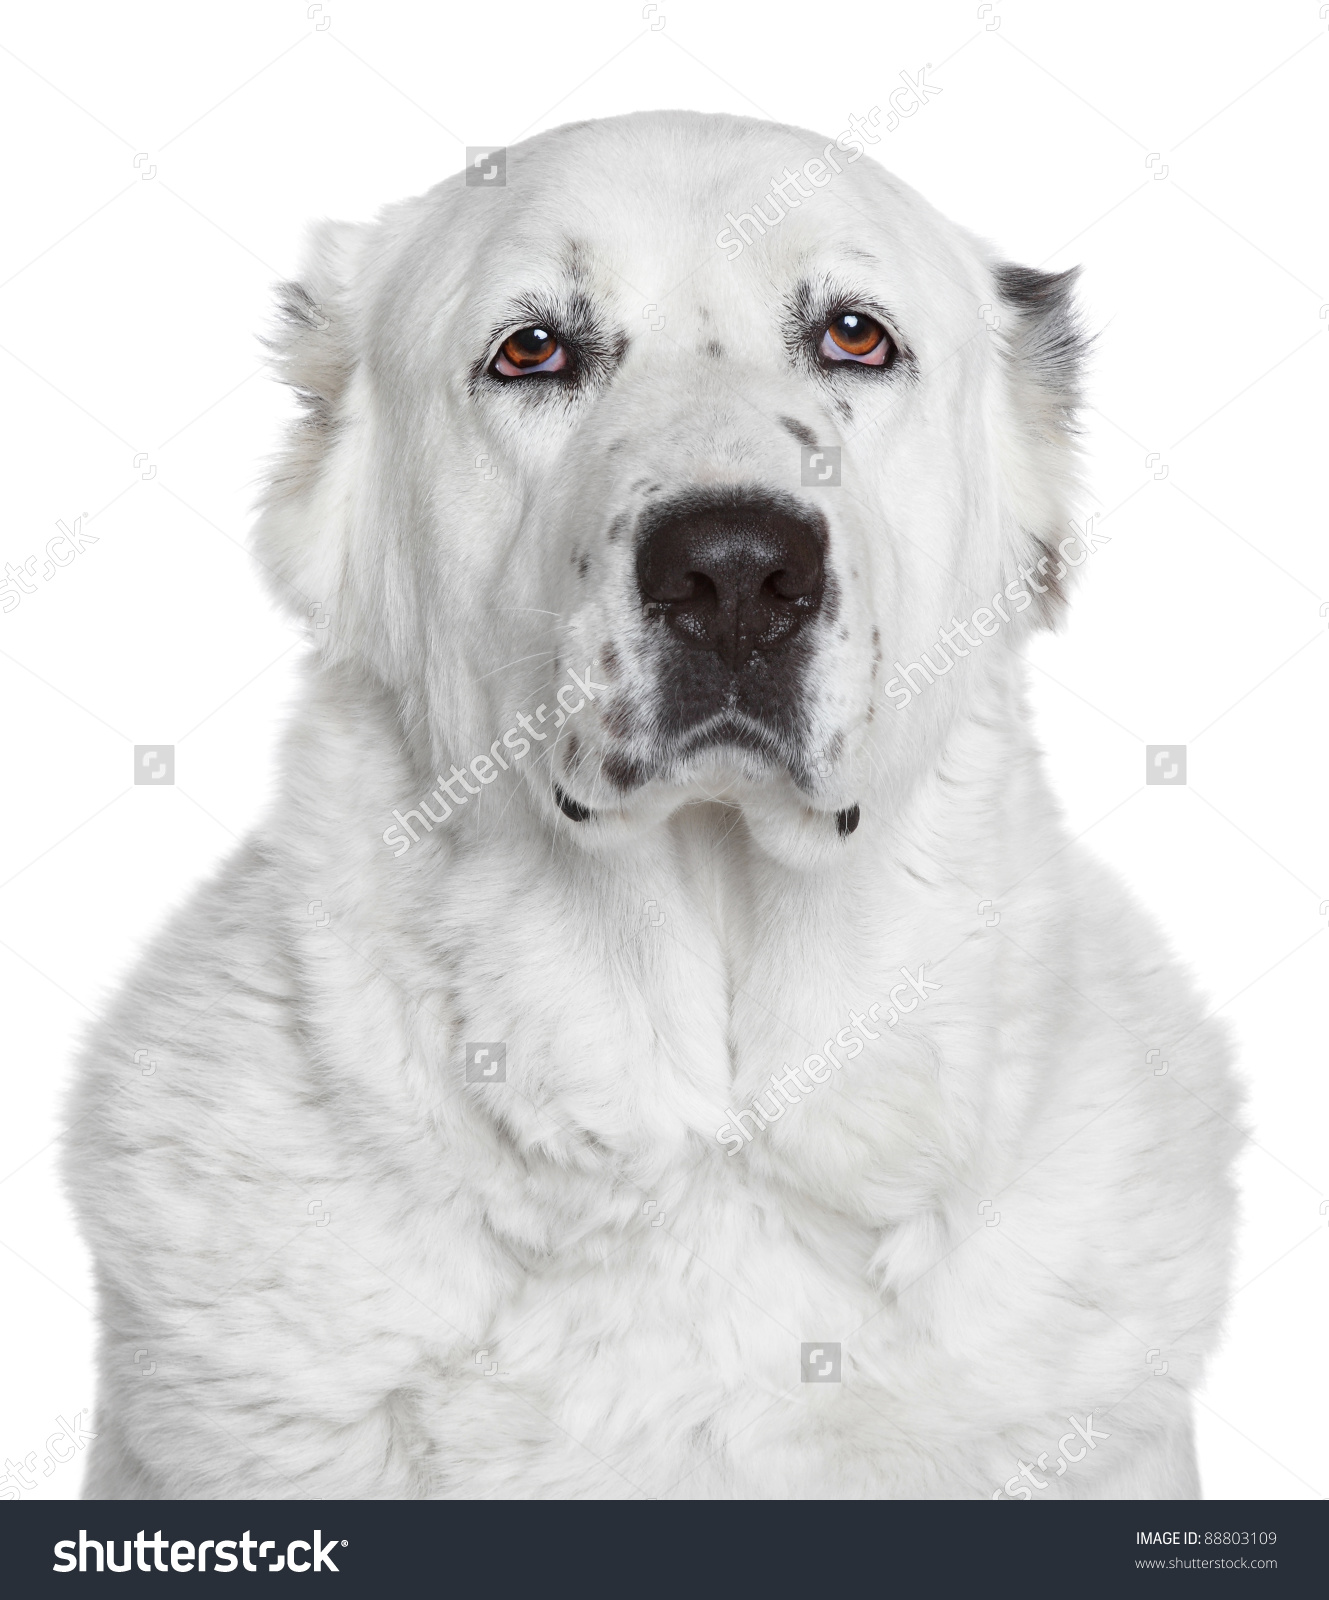 Central Asian Shepherd Dog Portrait On Stock Photo 88803109.